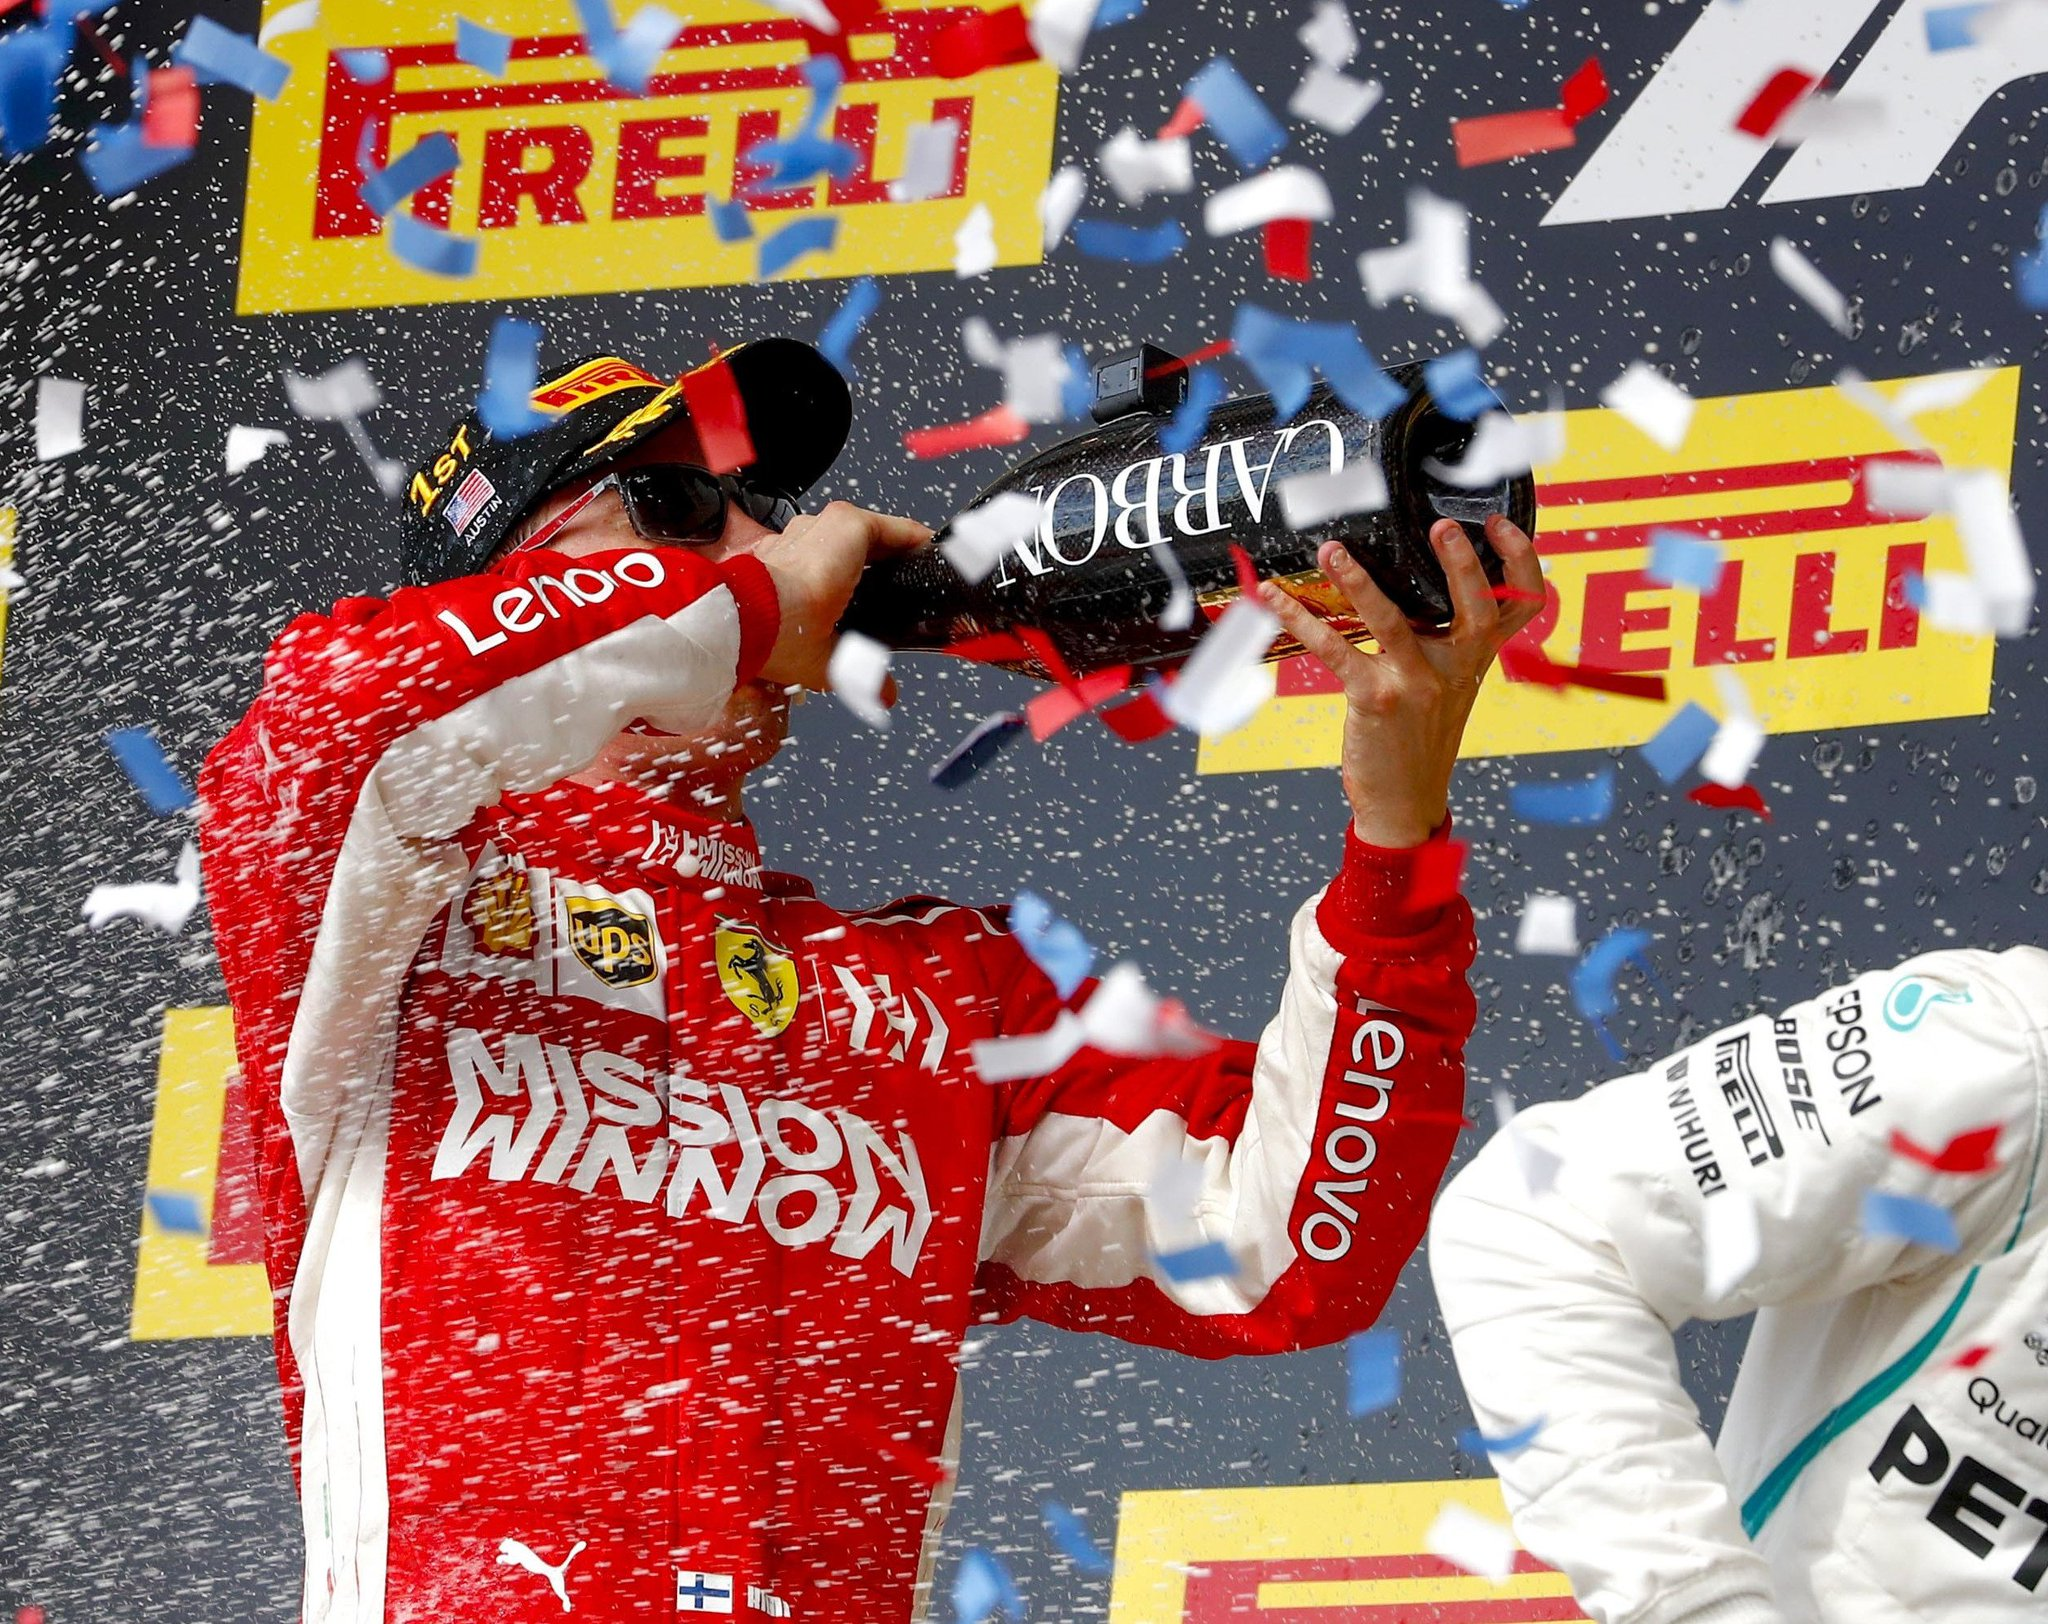 Happy 40th birthday Kimi Raikkonen...   Hope the bubbles are freely flowing for you today